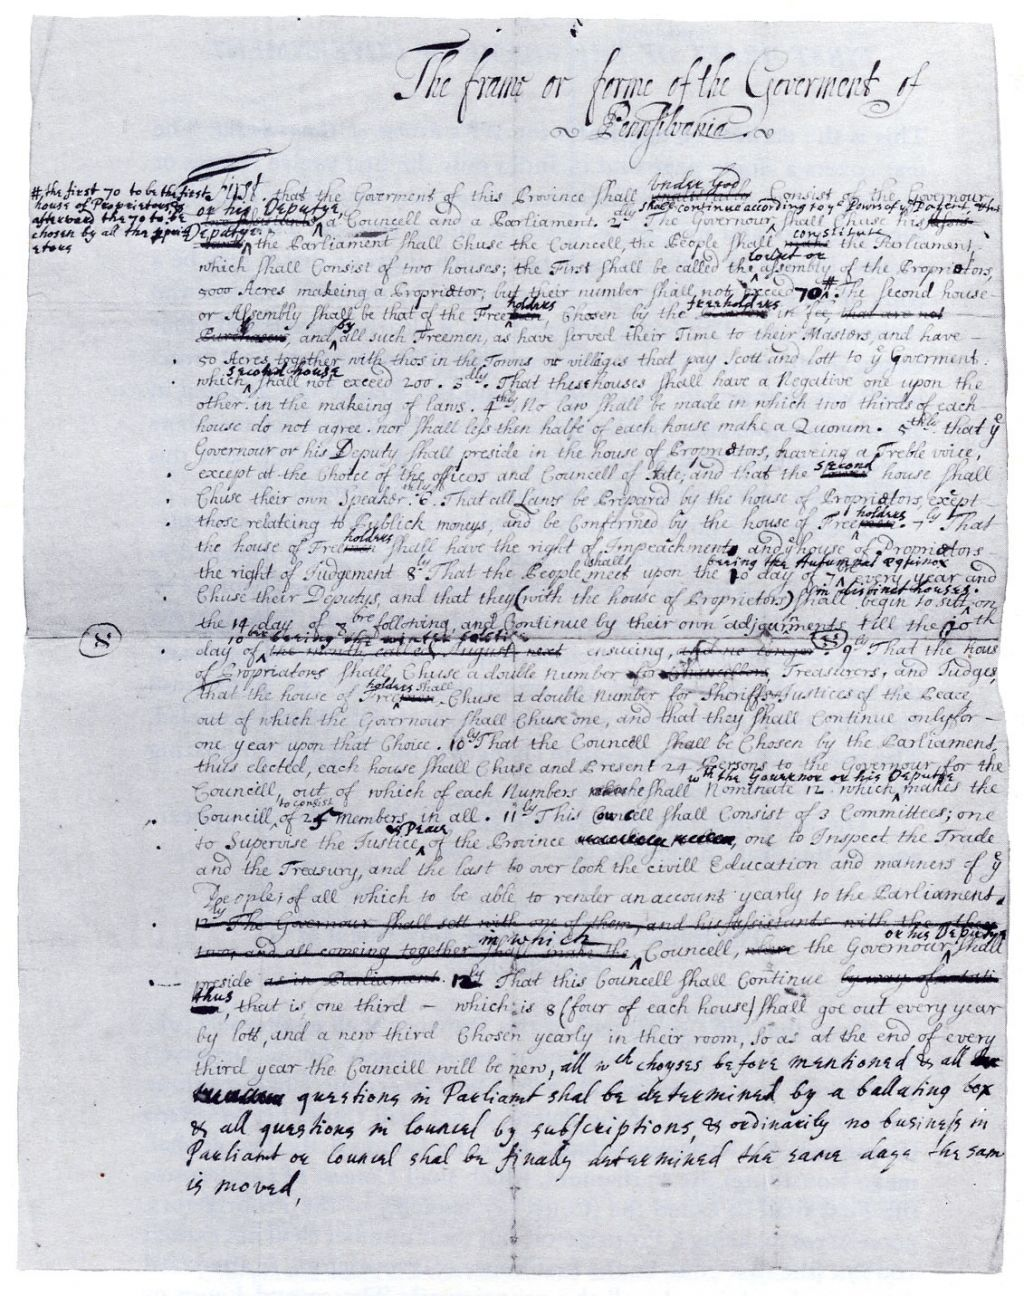 essays by william penn William penn's charter of privileges in 1701, william penn created a charter of privileges for the residents of his colony penn envisioned a colony that permitted religious freedom, the consent and participation of the governed, as well as other laws pertaining to property rights.